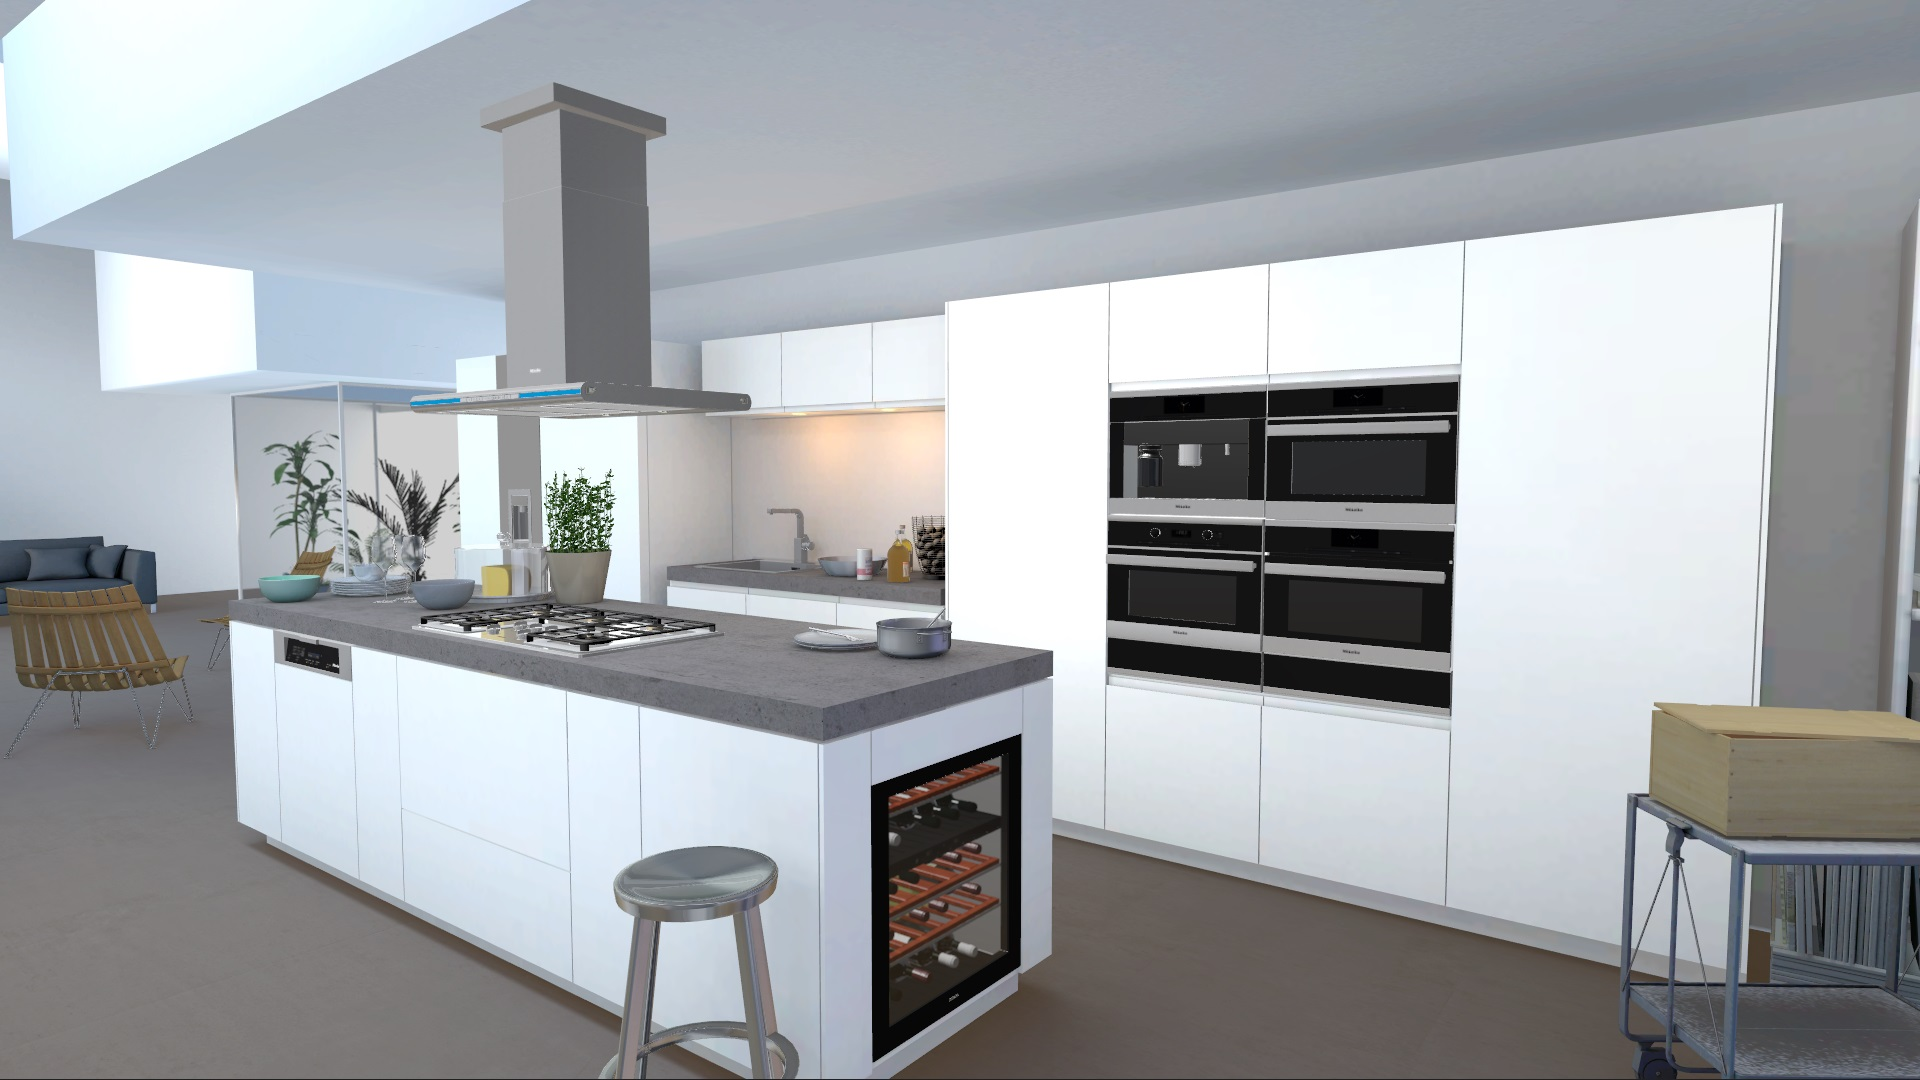 kitchen appliance visualizer redplant realtime studio miele kitchen appliance visualizer by unity with kitchen example